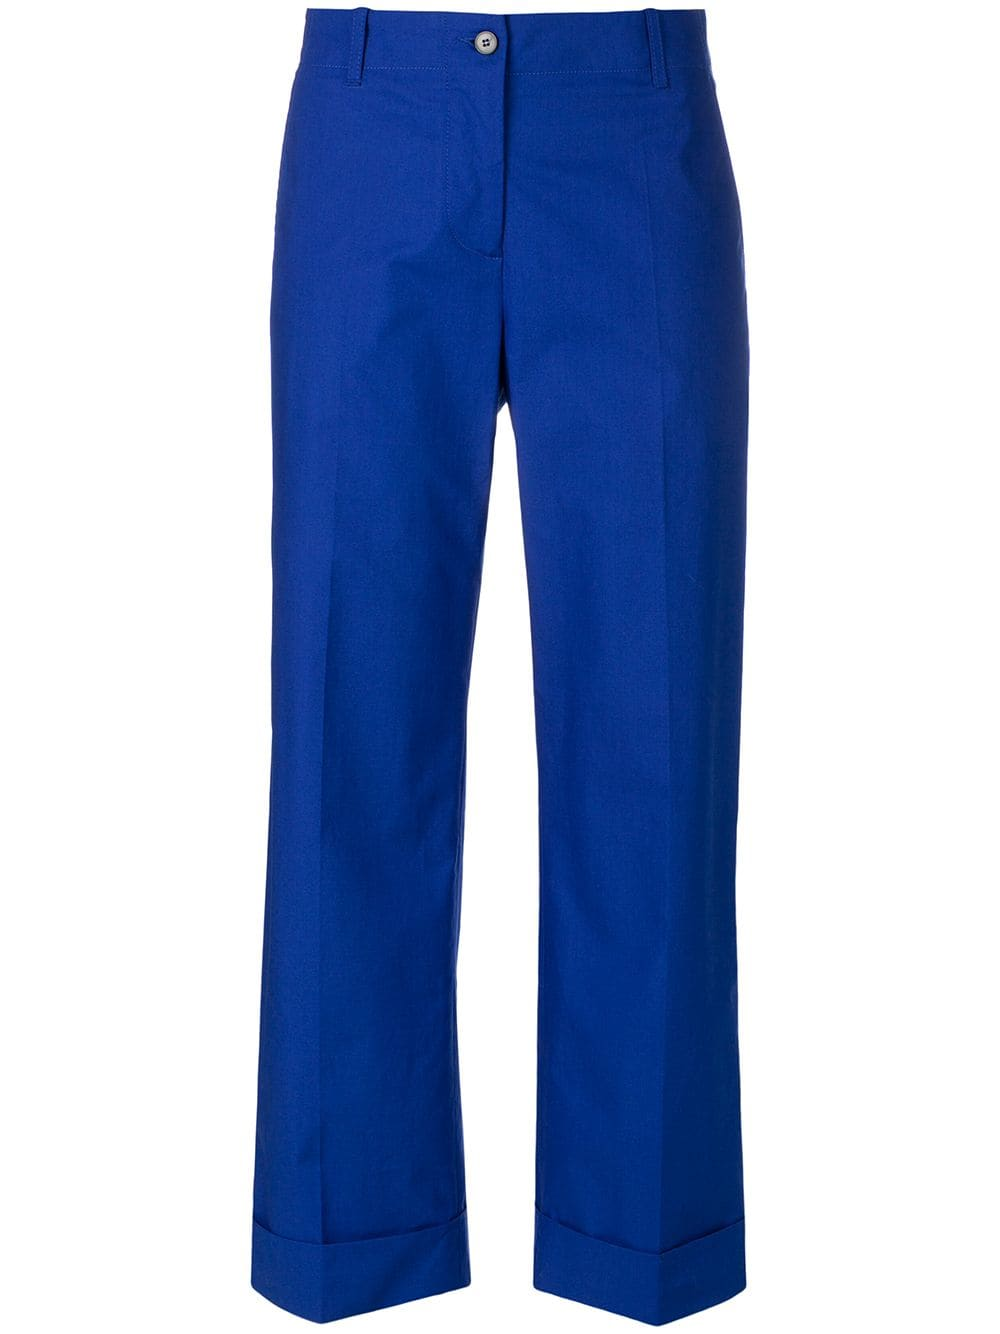 0237cc3ff42 alberto-biani-wide-leg-trousers-blue-farfetch-com-photo.jpg 1534572506